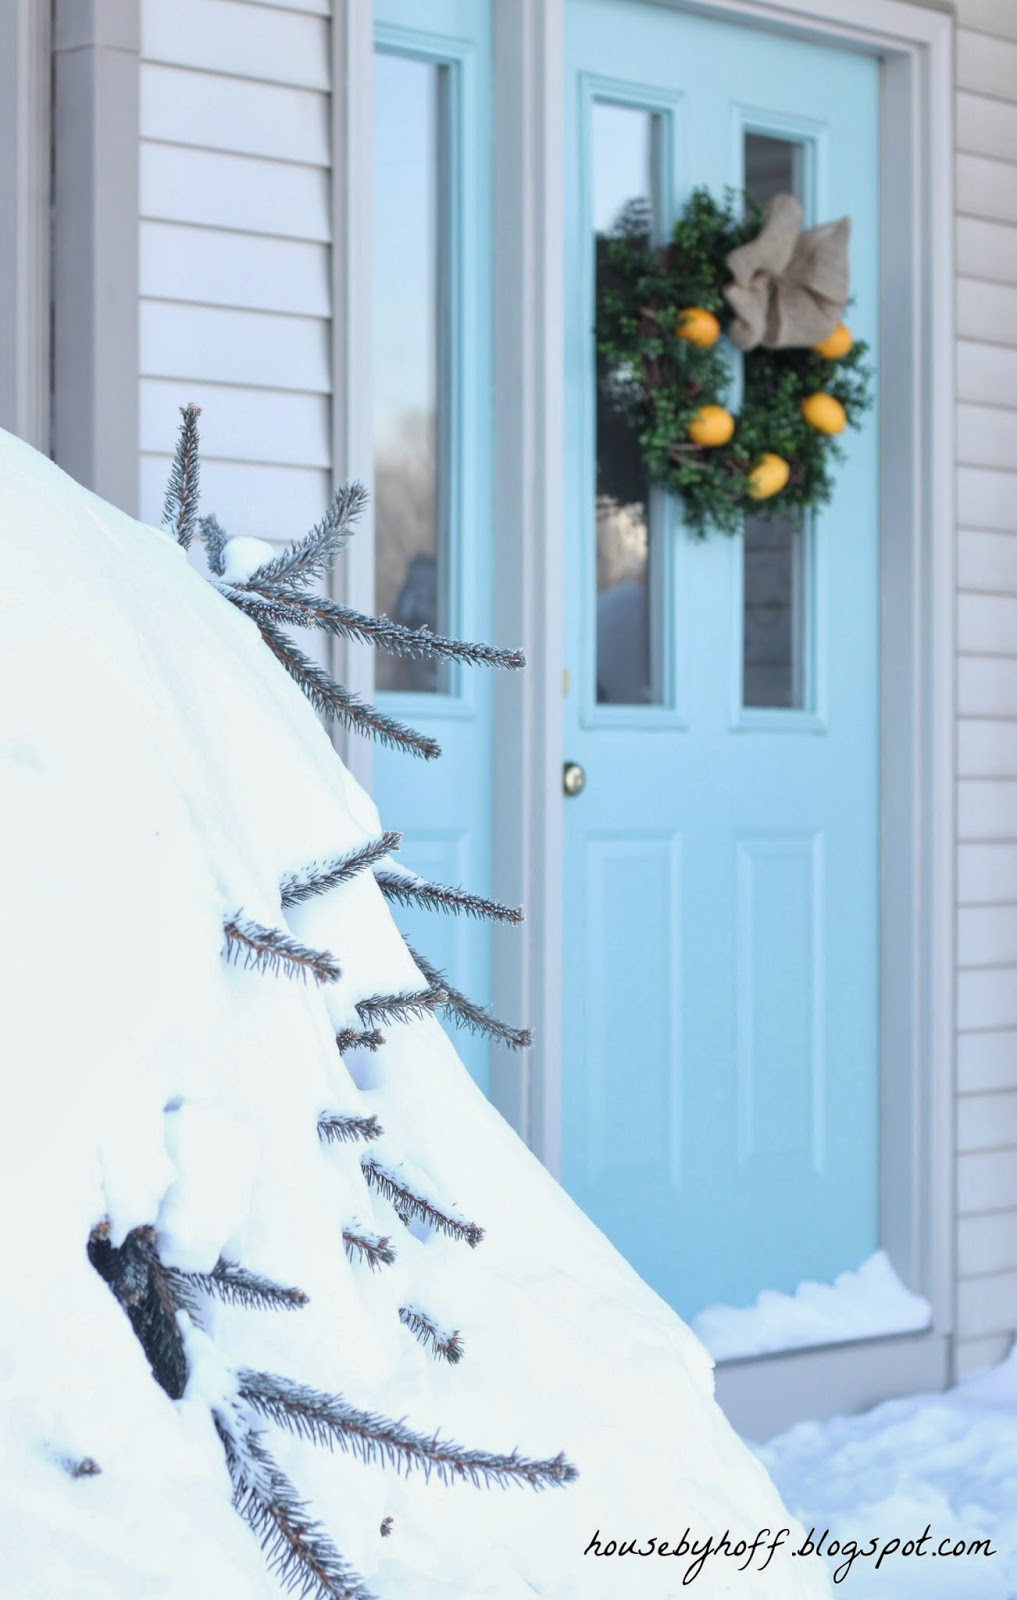 A side angle of the wreath on the door with snow on the porch.